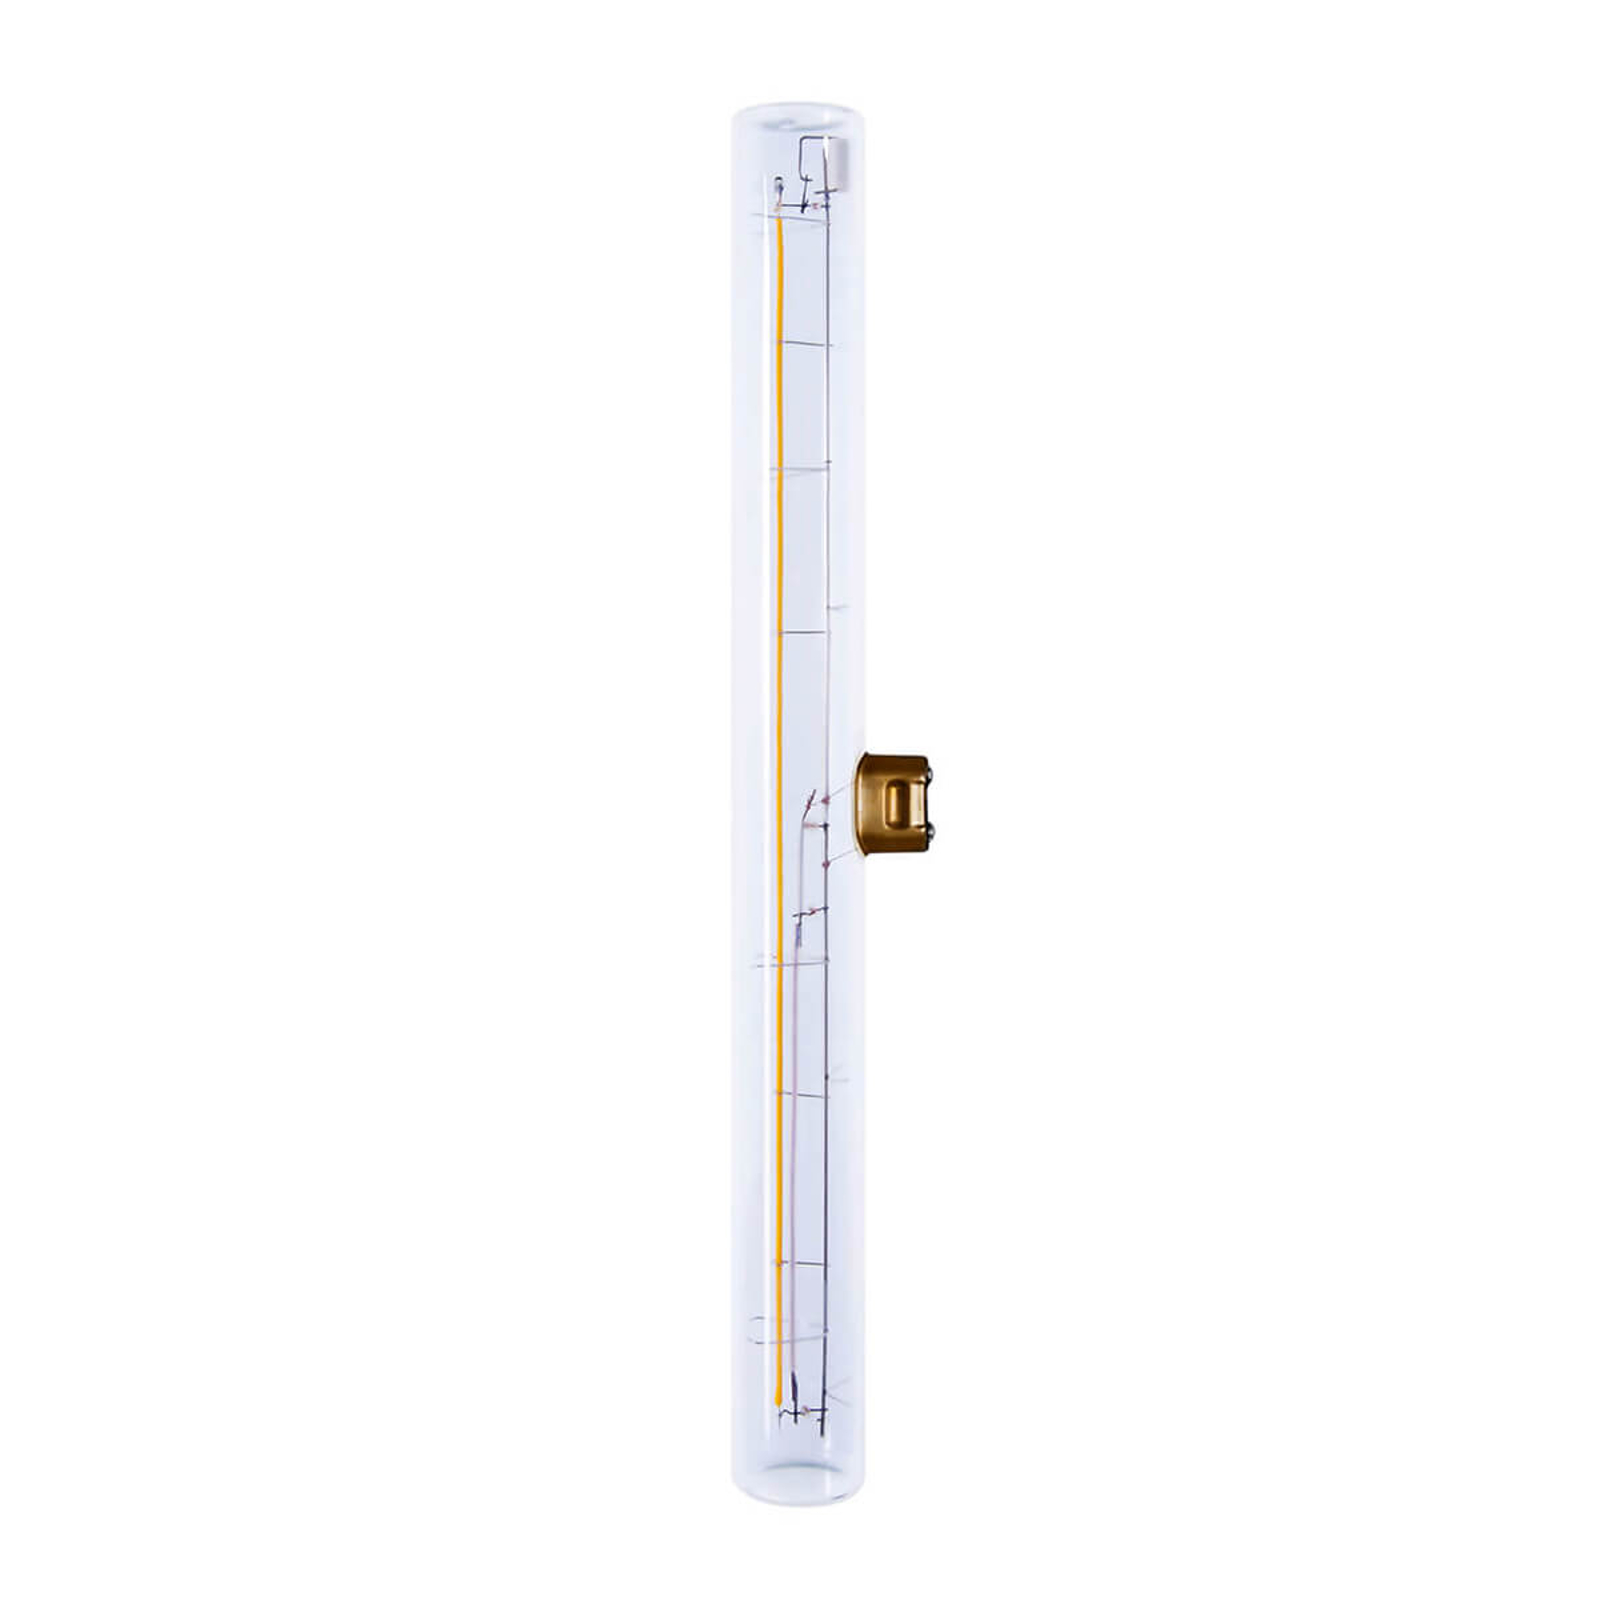 S14d 8W 922 LED-Linienlampe, 300 mm